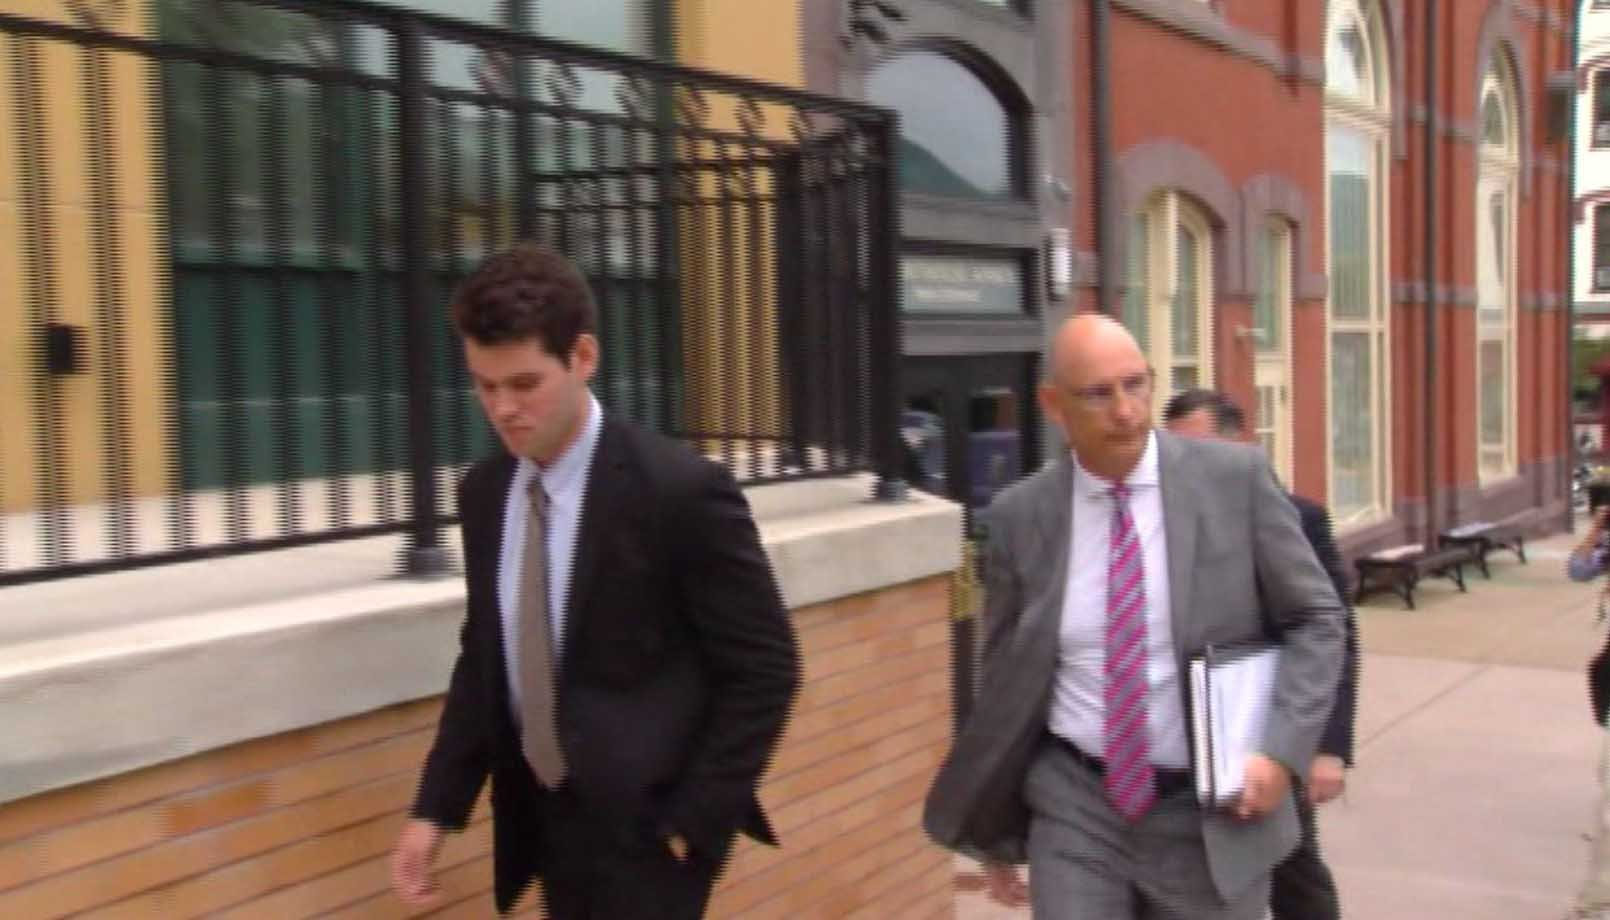 Ryan Burke, one of the 24 defendants in the hazing death of Timothy Piazza, pleaded guilty Wednesday and will be sentenced next month. (Source: WJAC via CNN)